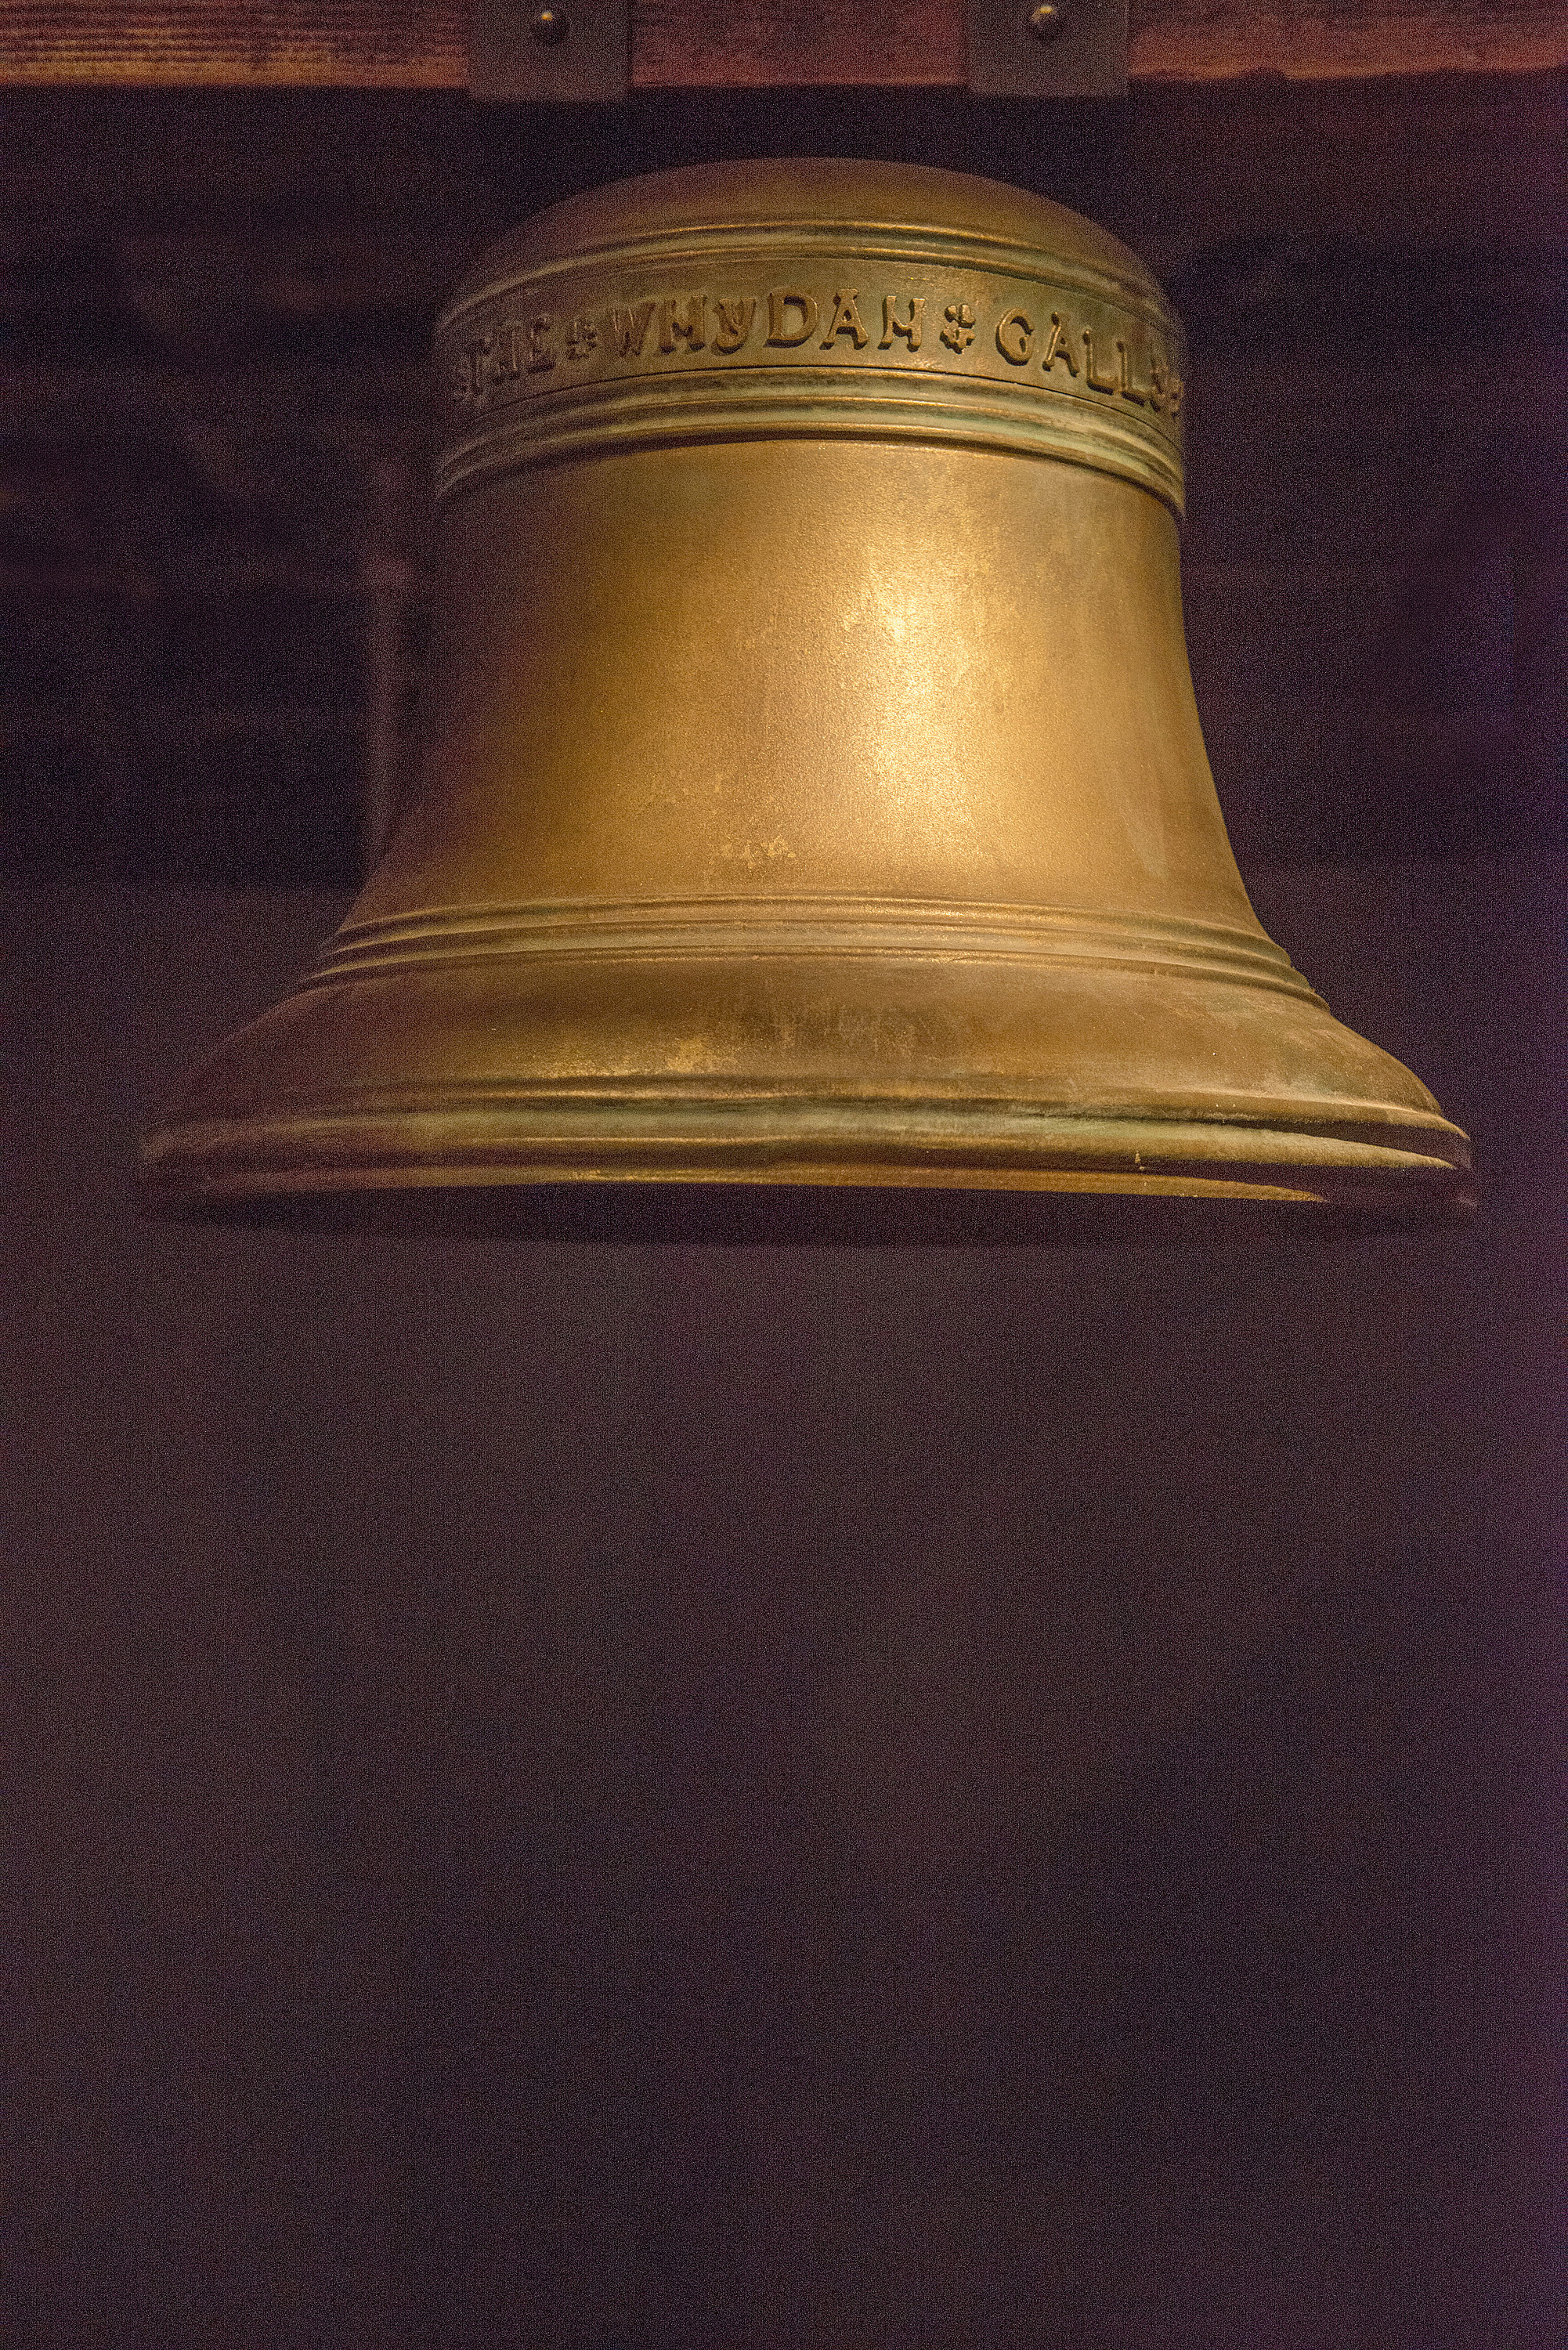 This is the bell from the Whydah ship